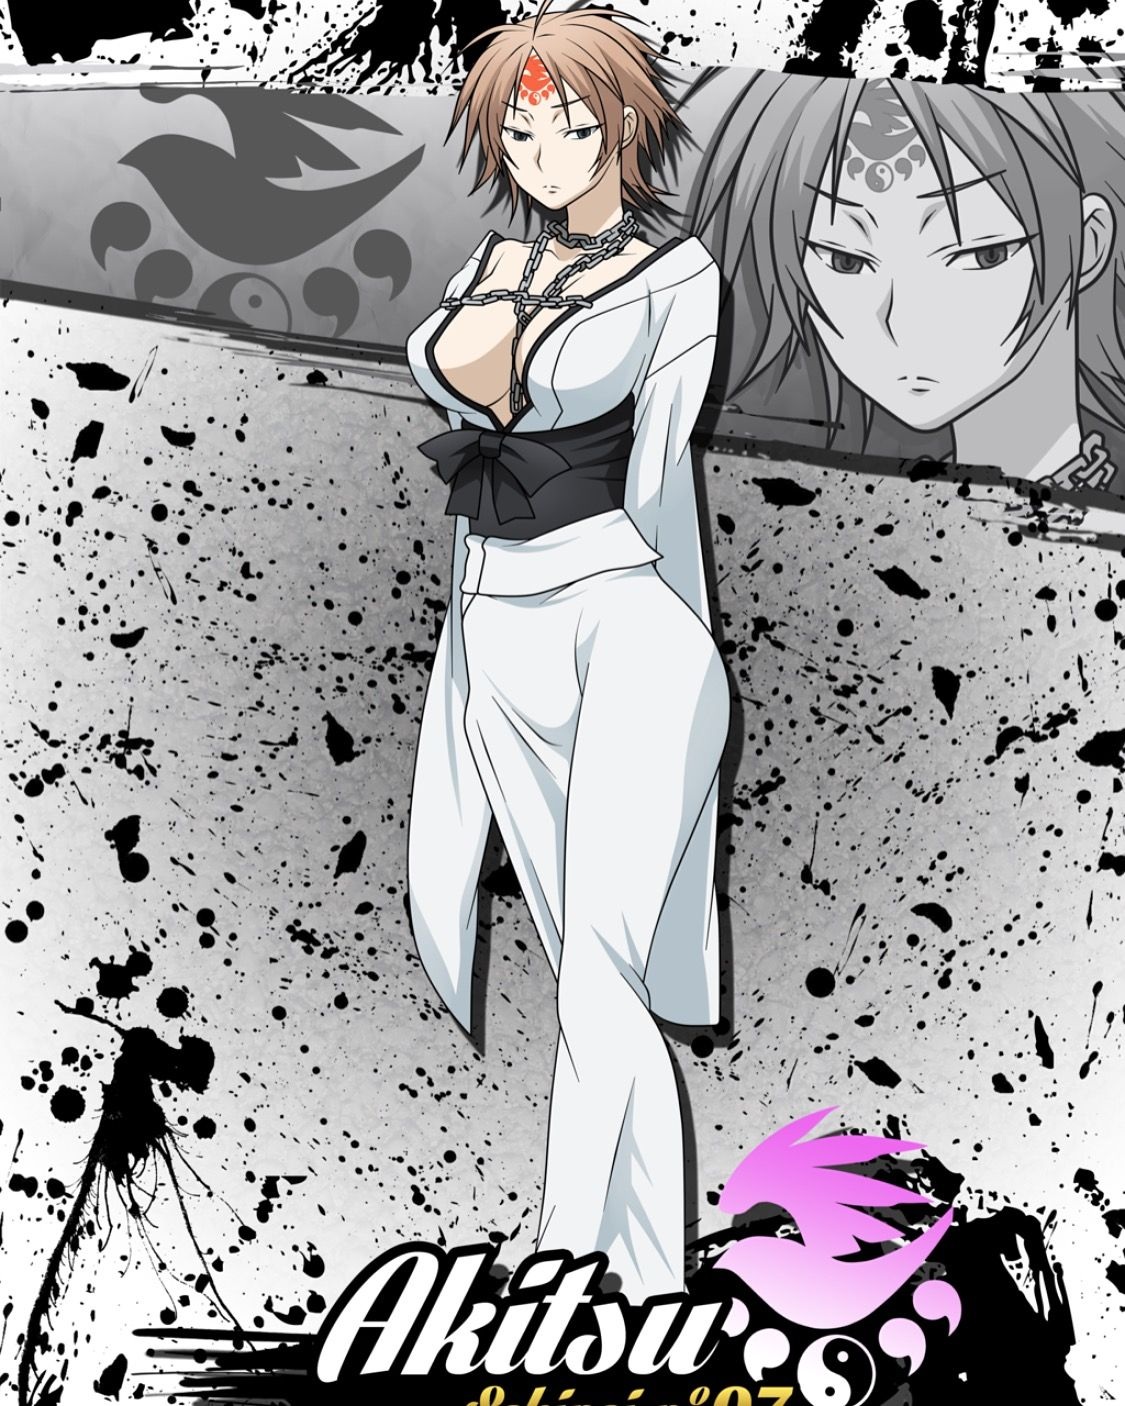 Sekirei manga art anime art high school deviantart anime girls